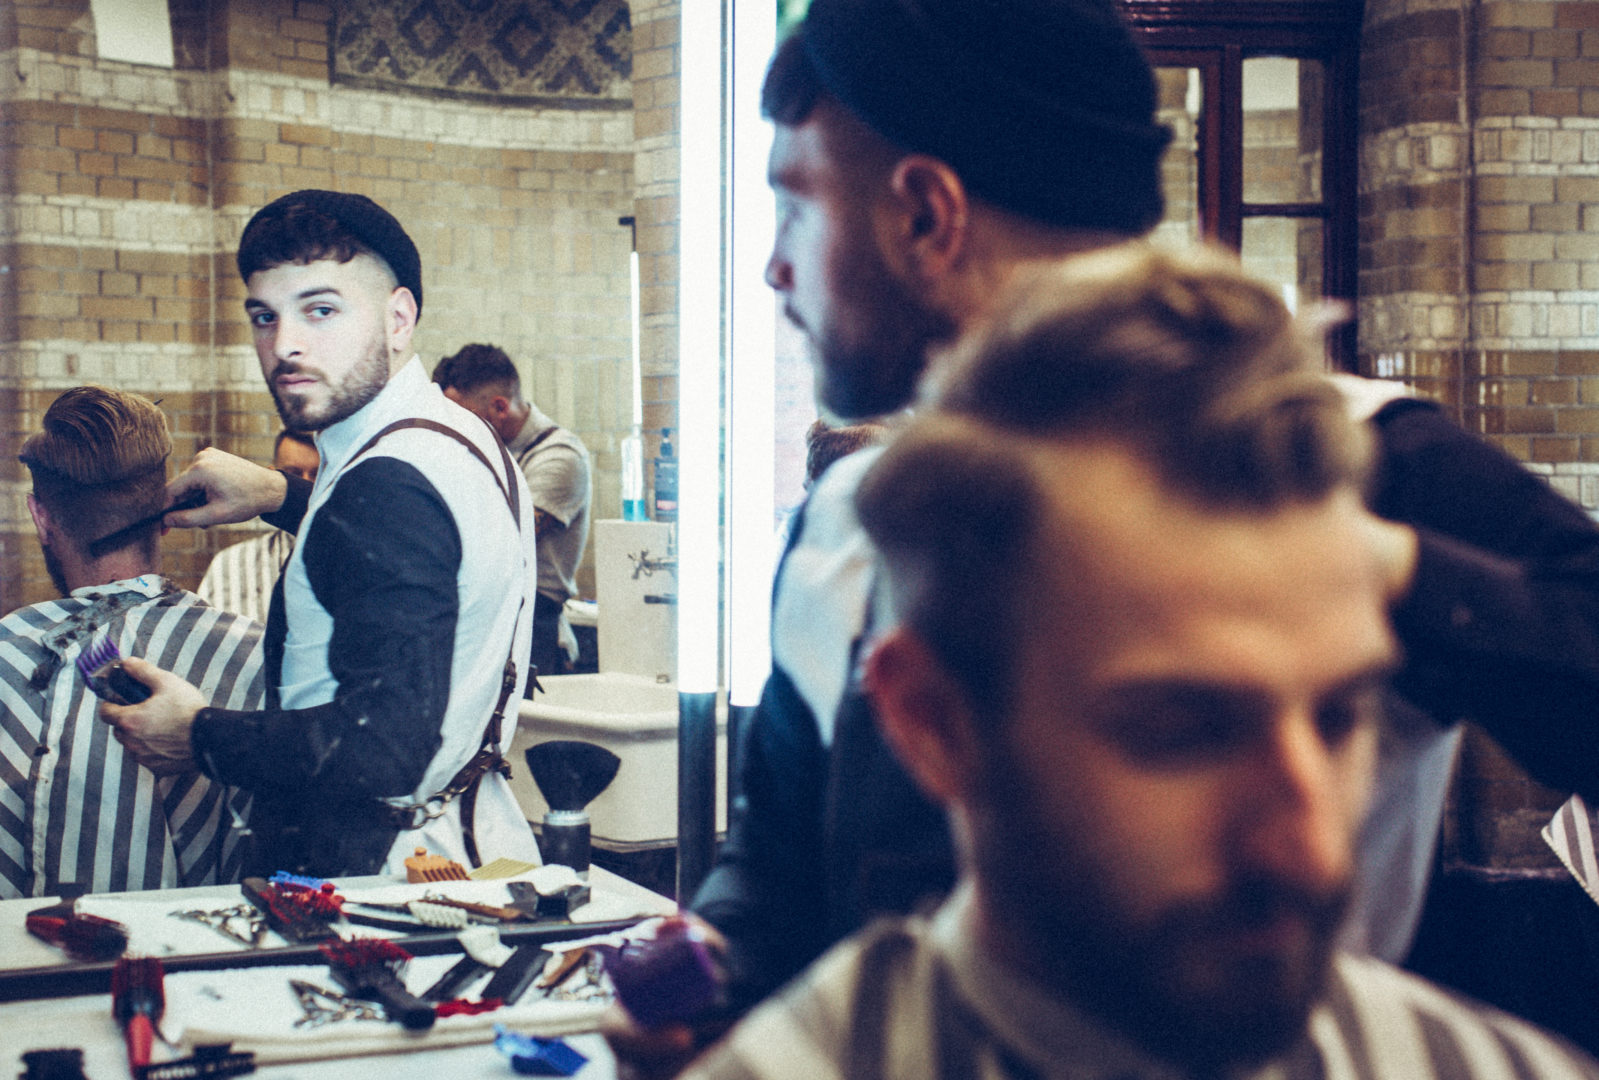 Amsterdam Barbershop: Cut Throat Barber & Coffee